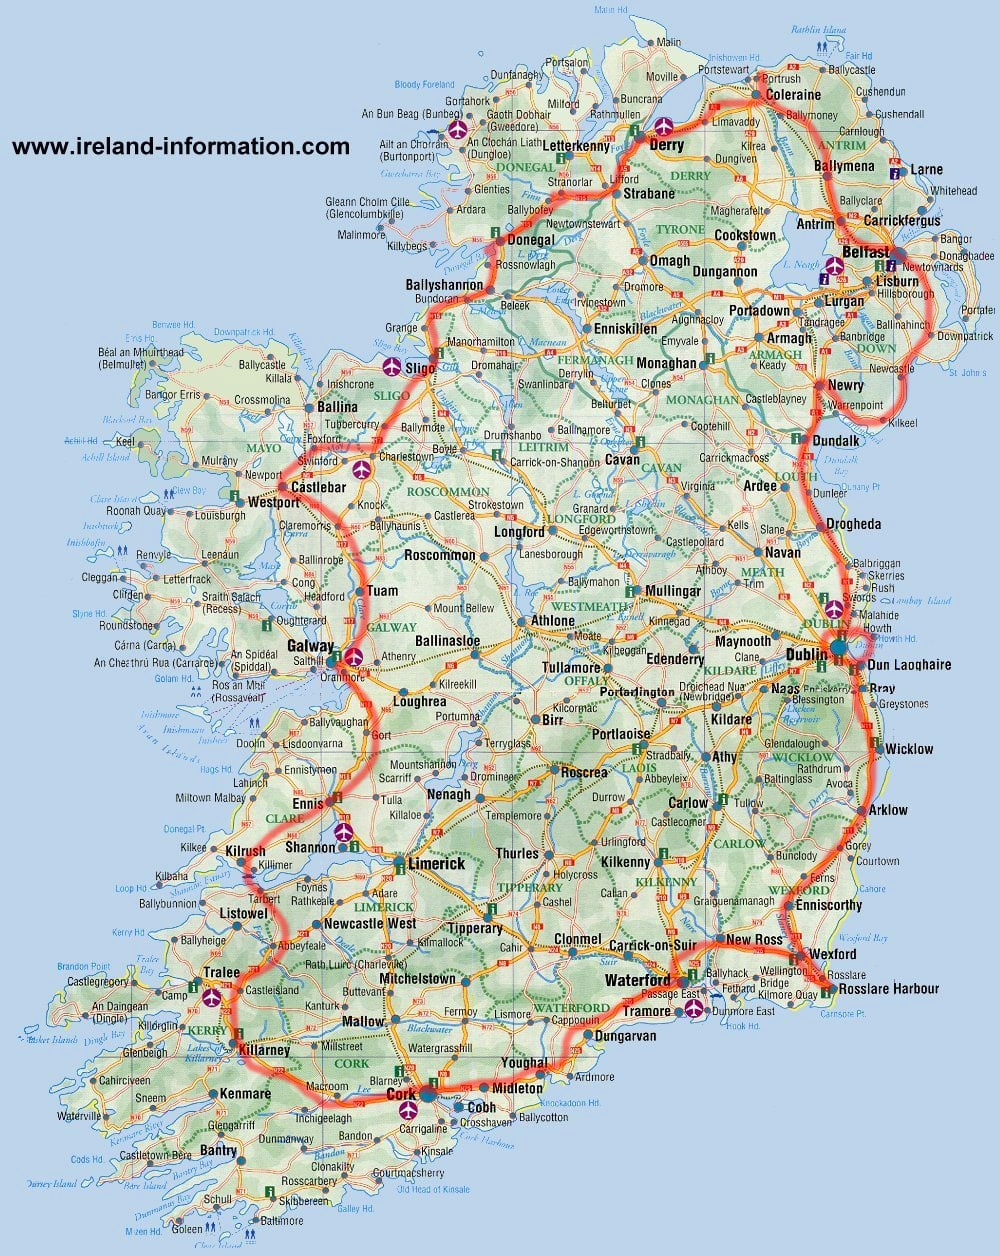 dingle ireland map with Photos Dirlande on Irish Folk Music History And Future furthermore Ireland together with Bray additionally Photos Dirlande besides Castlegregory Tralee.